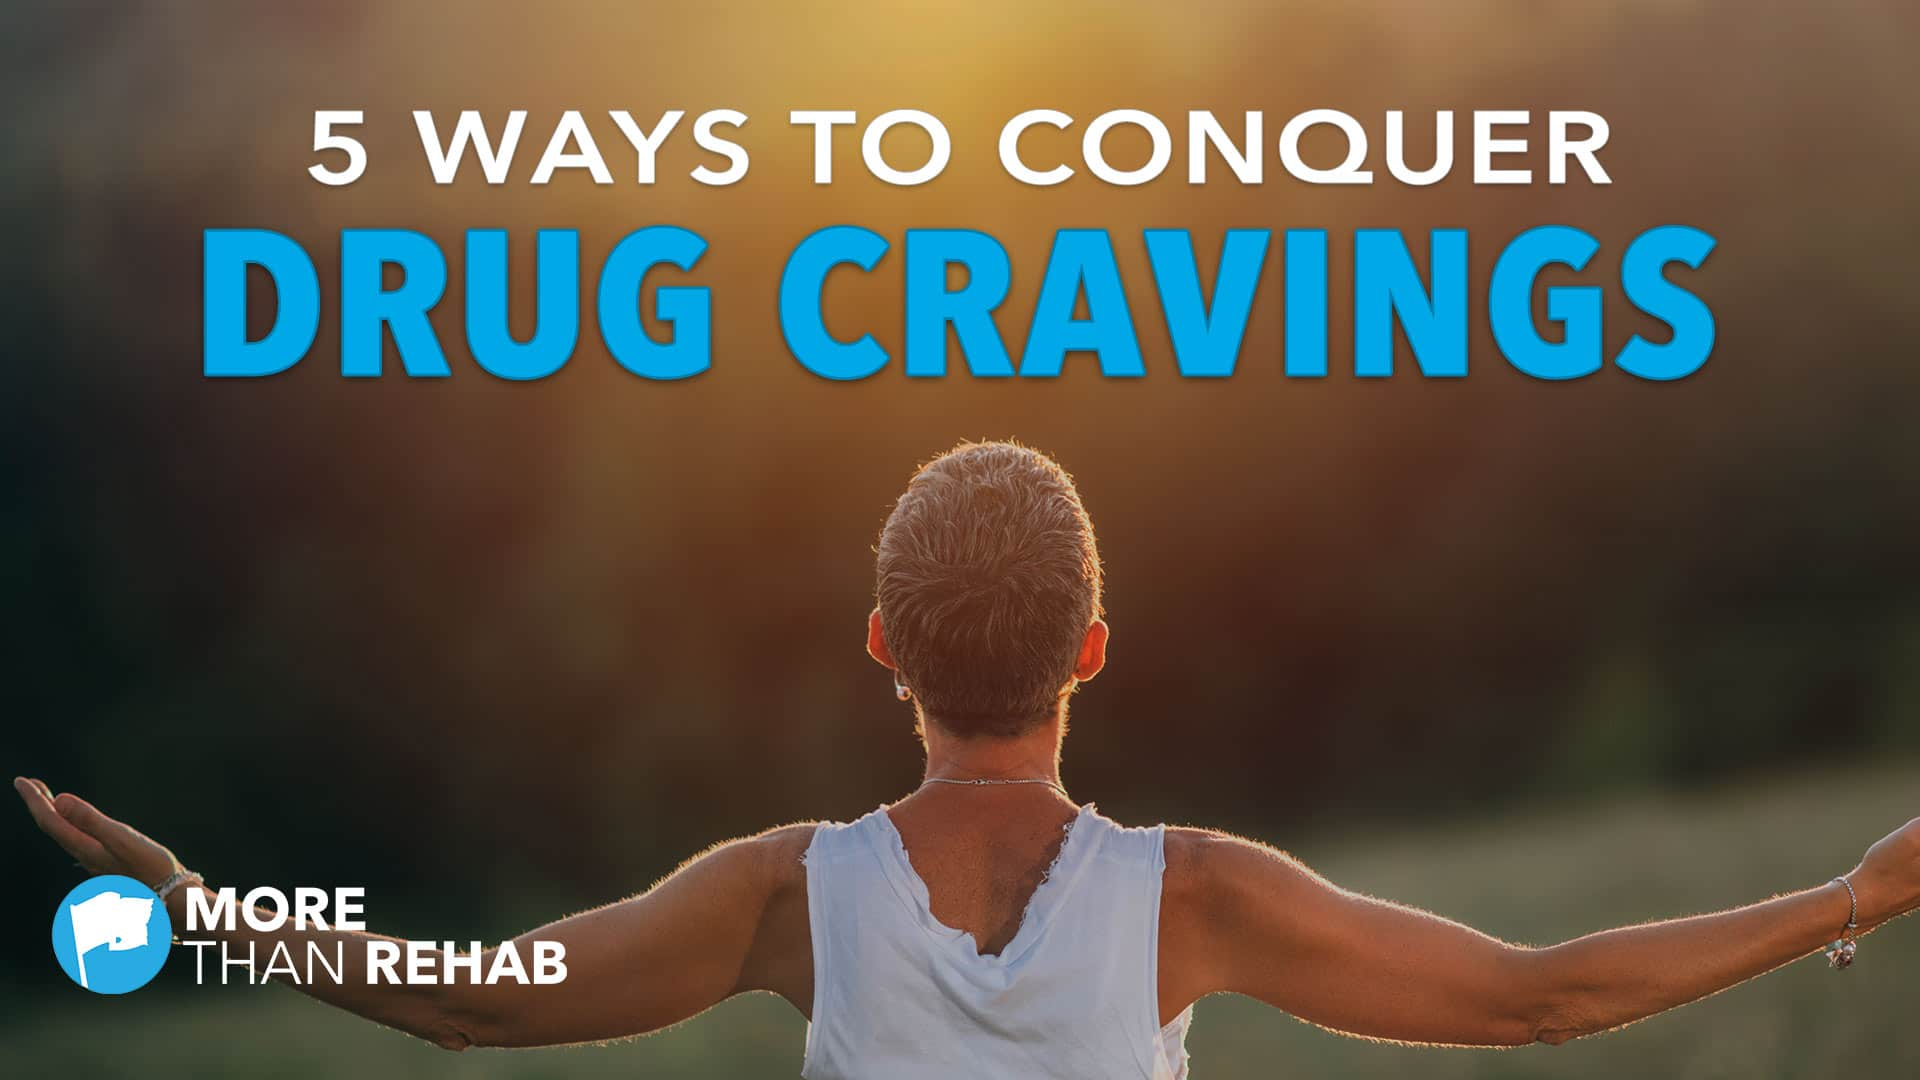 ways-to-conquer-drug-cravings-relapse-triggers-withdrawal-symptoms-addiction-recovery-Houston-Texas